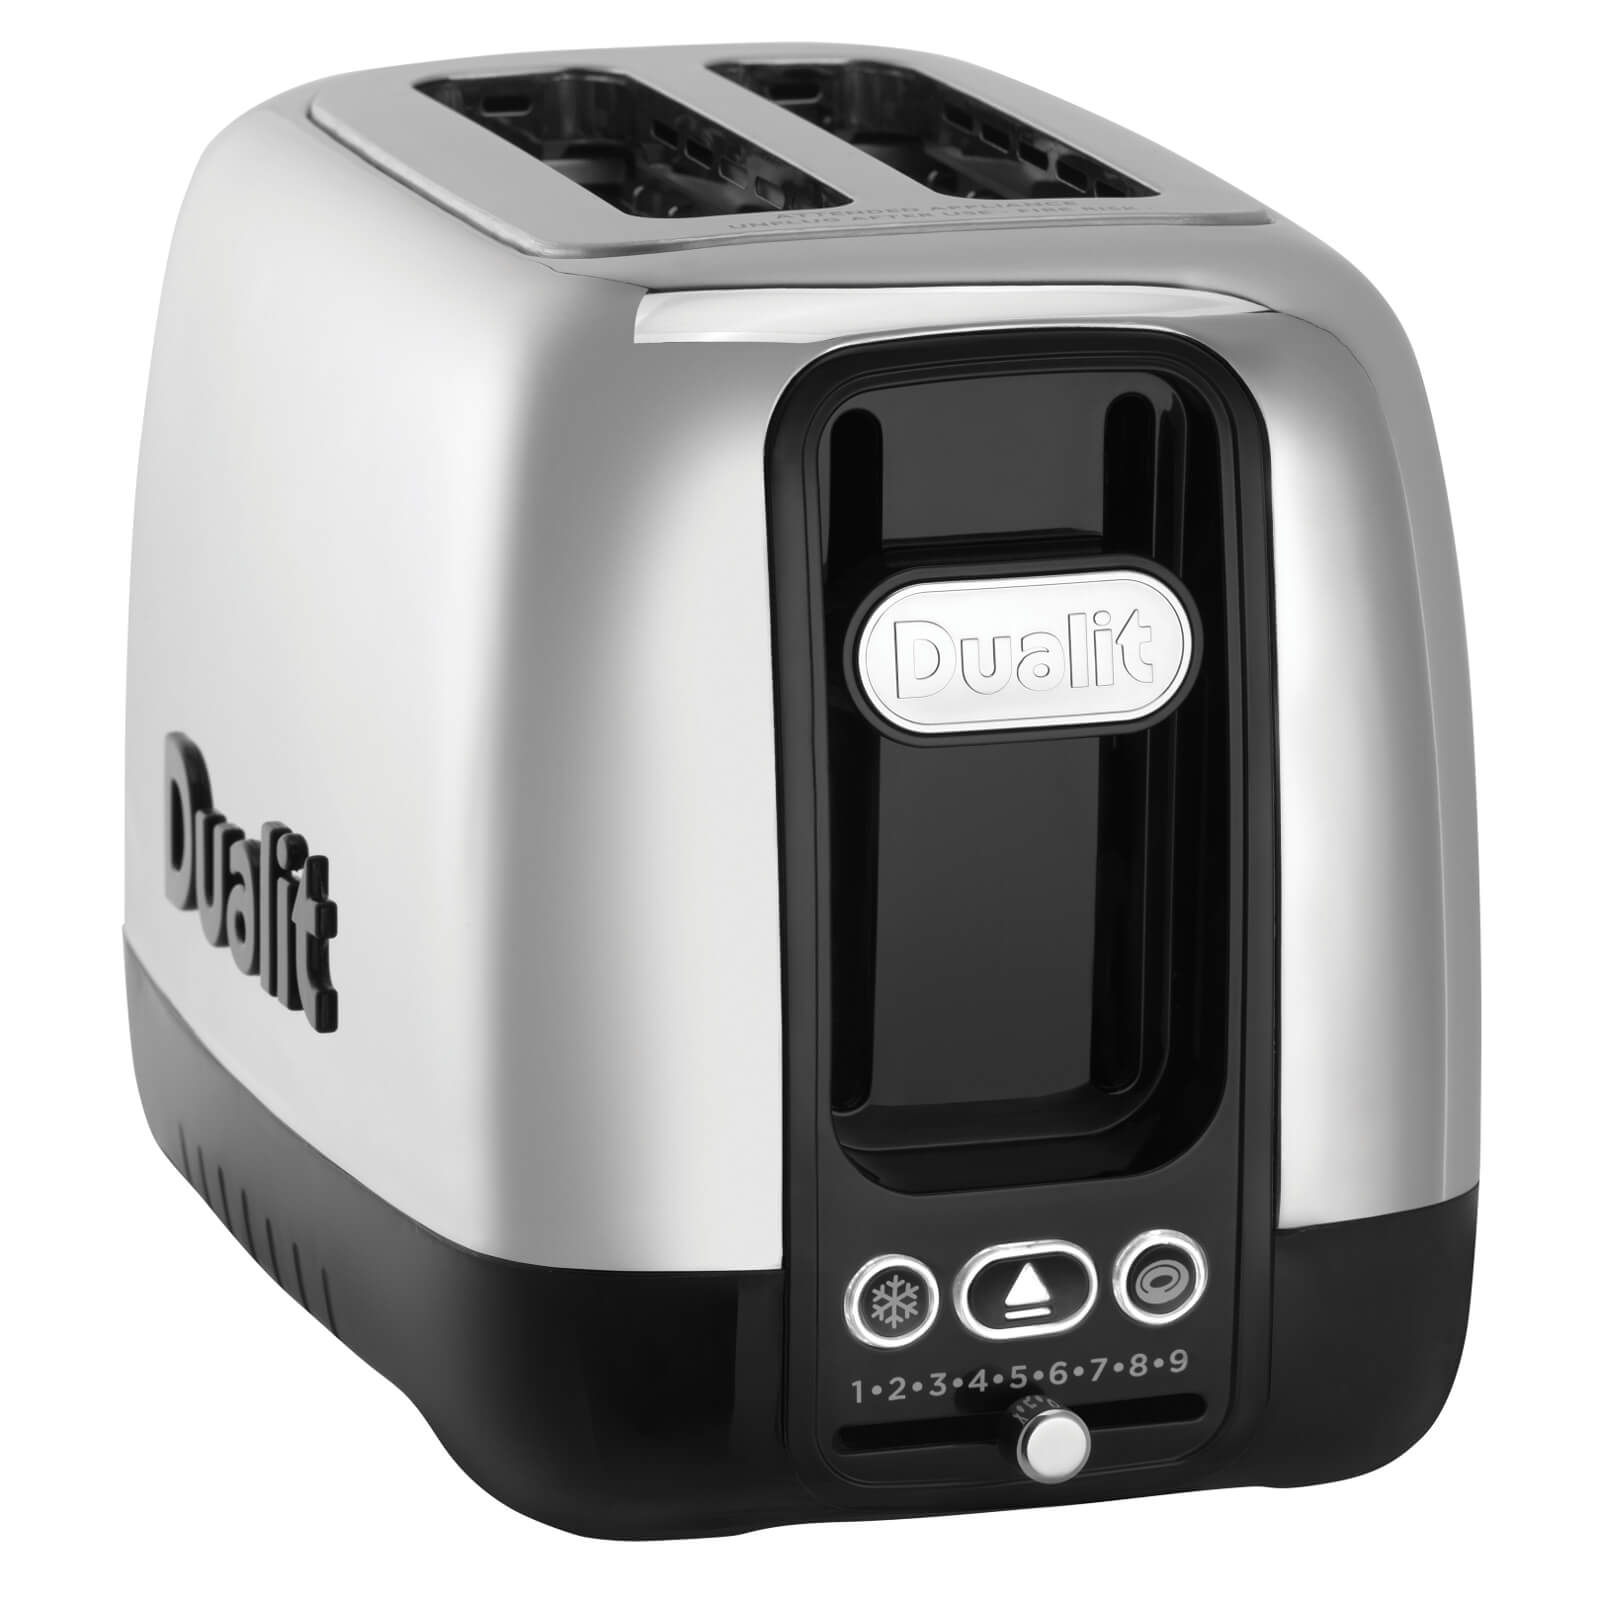 Dualit 26600 Domus 2 Slot Toaster - Polished Steel/Black